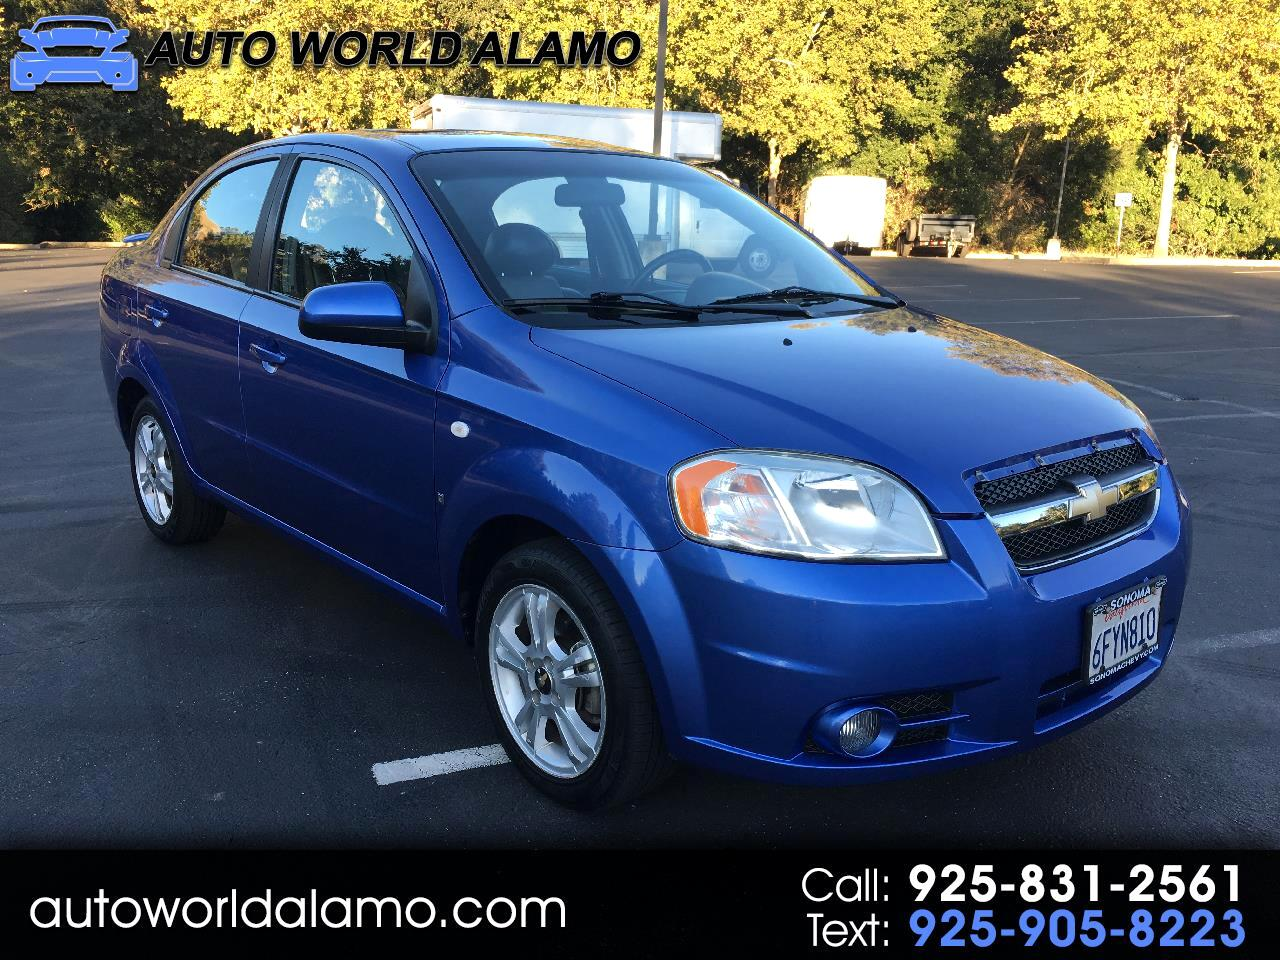 2008 Chevrolet Aveo 4dr Sdn LS